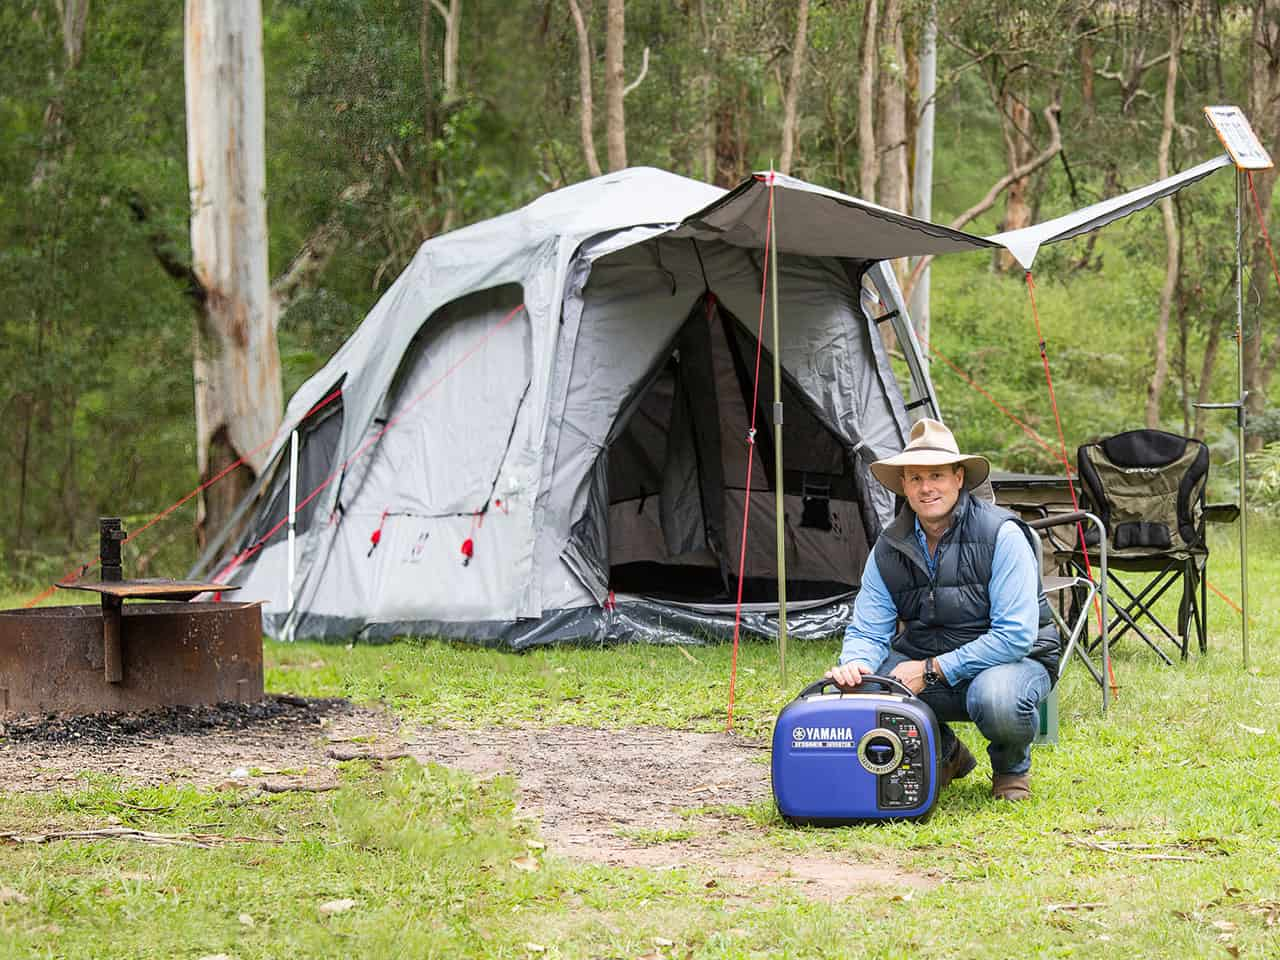 Pat Callinan with a Yamaha EF2000iS portable inverter generator at a camping site